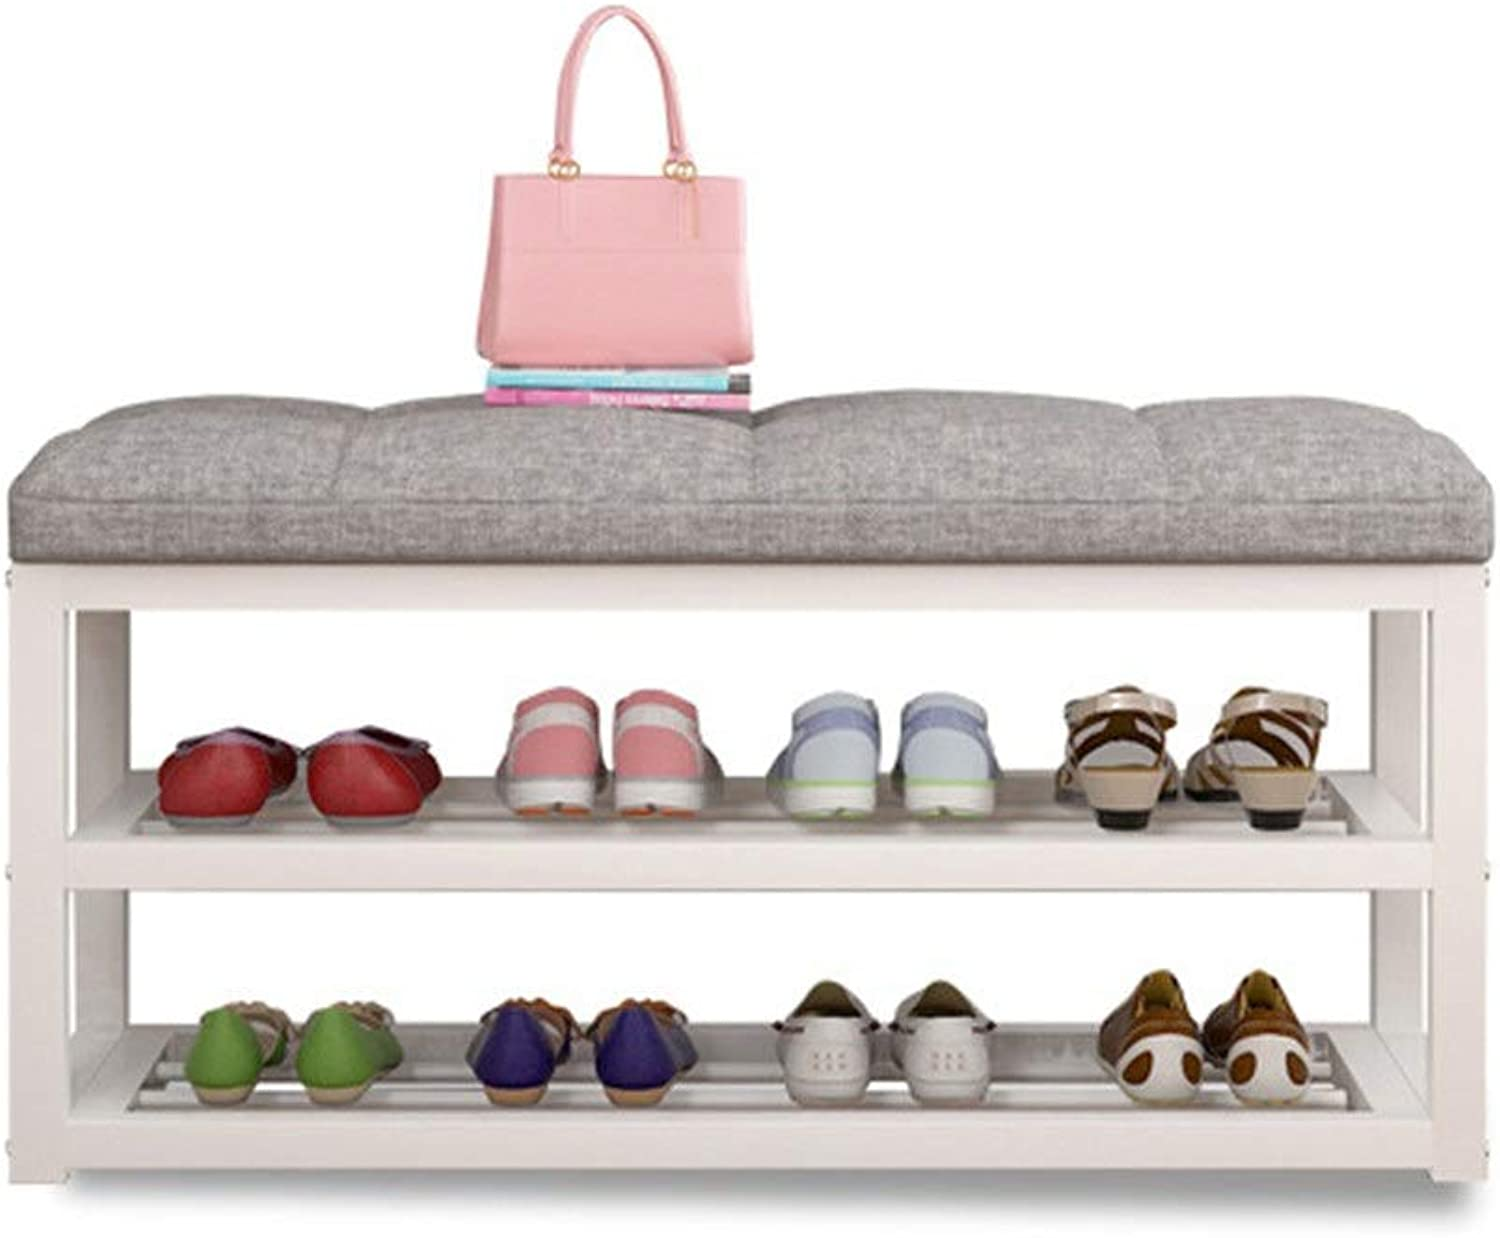 shoesStorage Shelf shoes Organizer Hallway shoes Storage Bench Organizer Metal shoes Rack shoes Bench with Fabric Seat Cushion (color   White, Size   60x30x50cm)